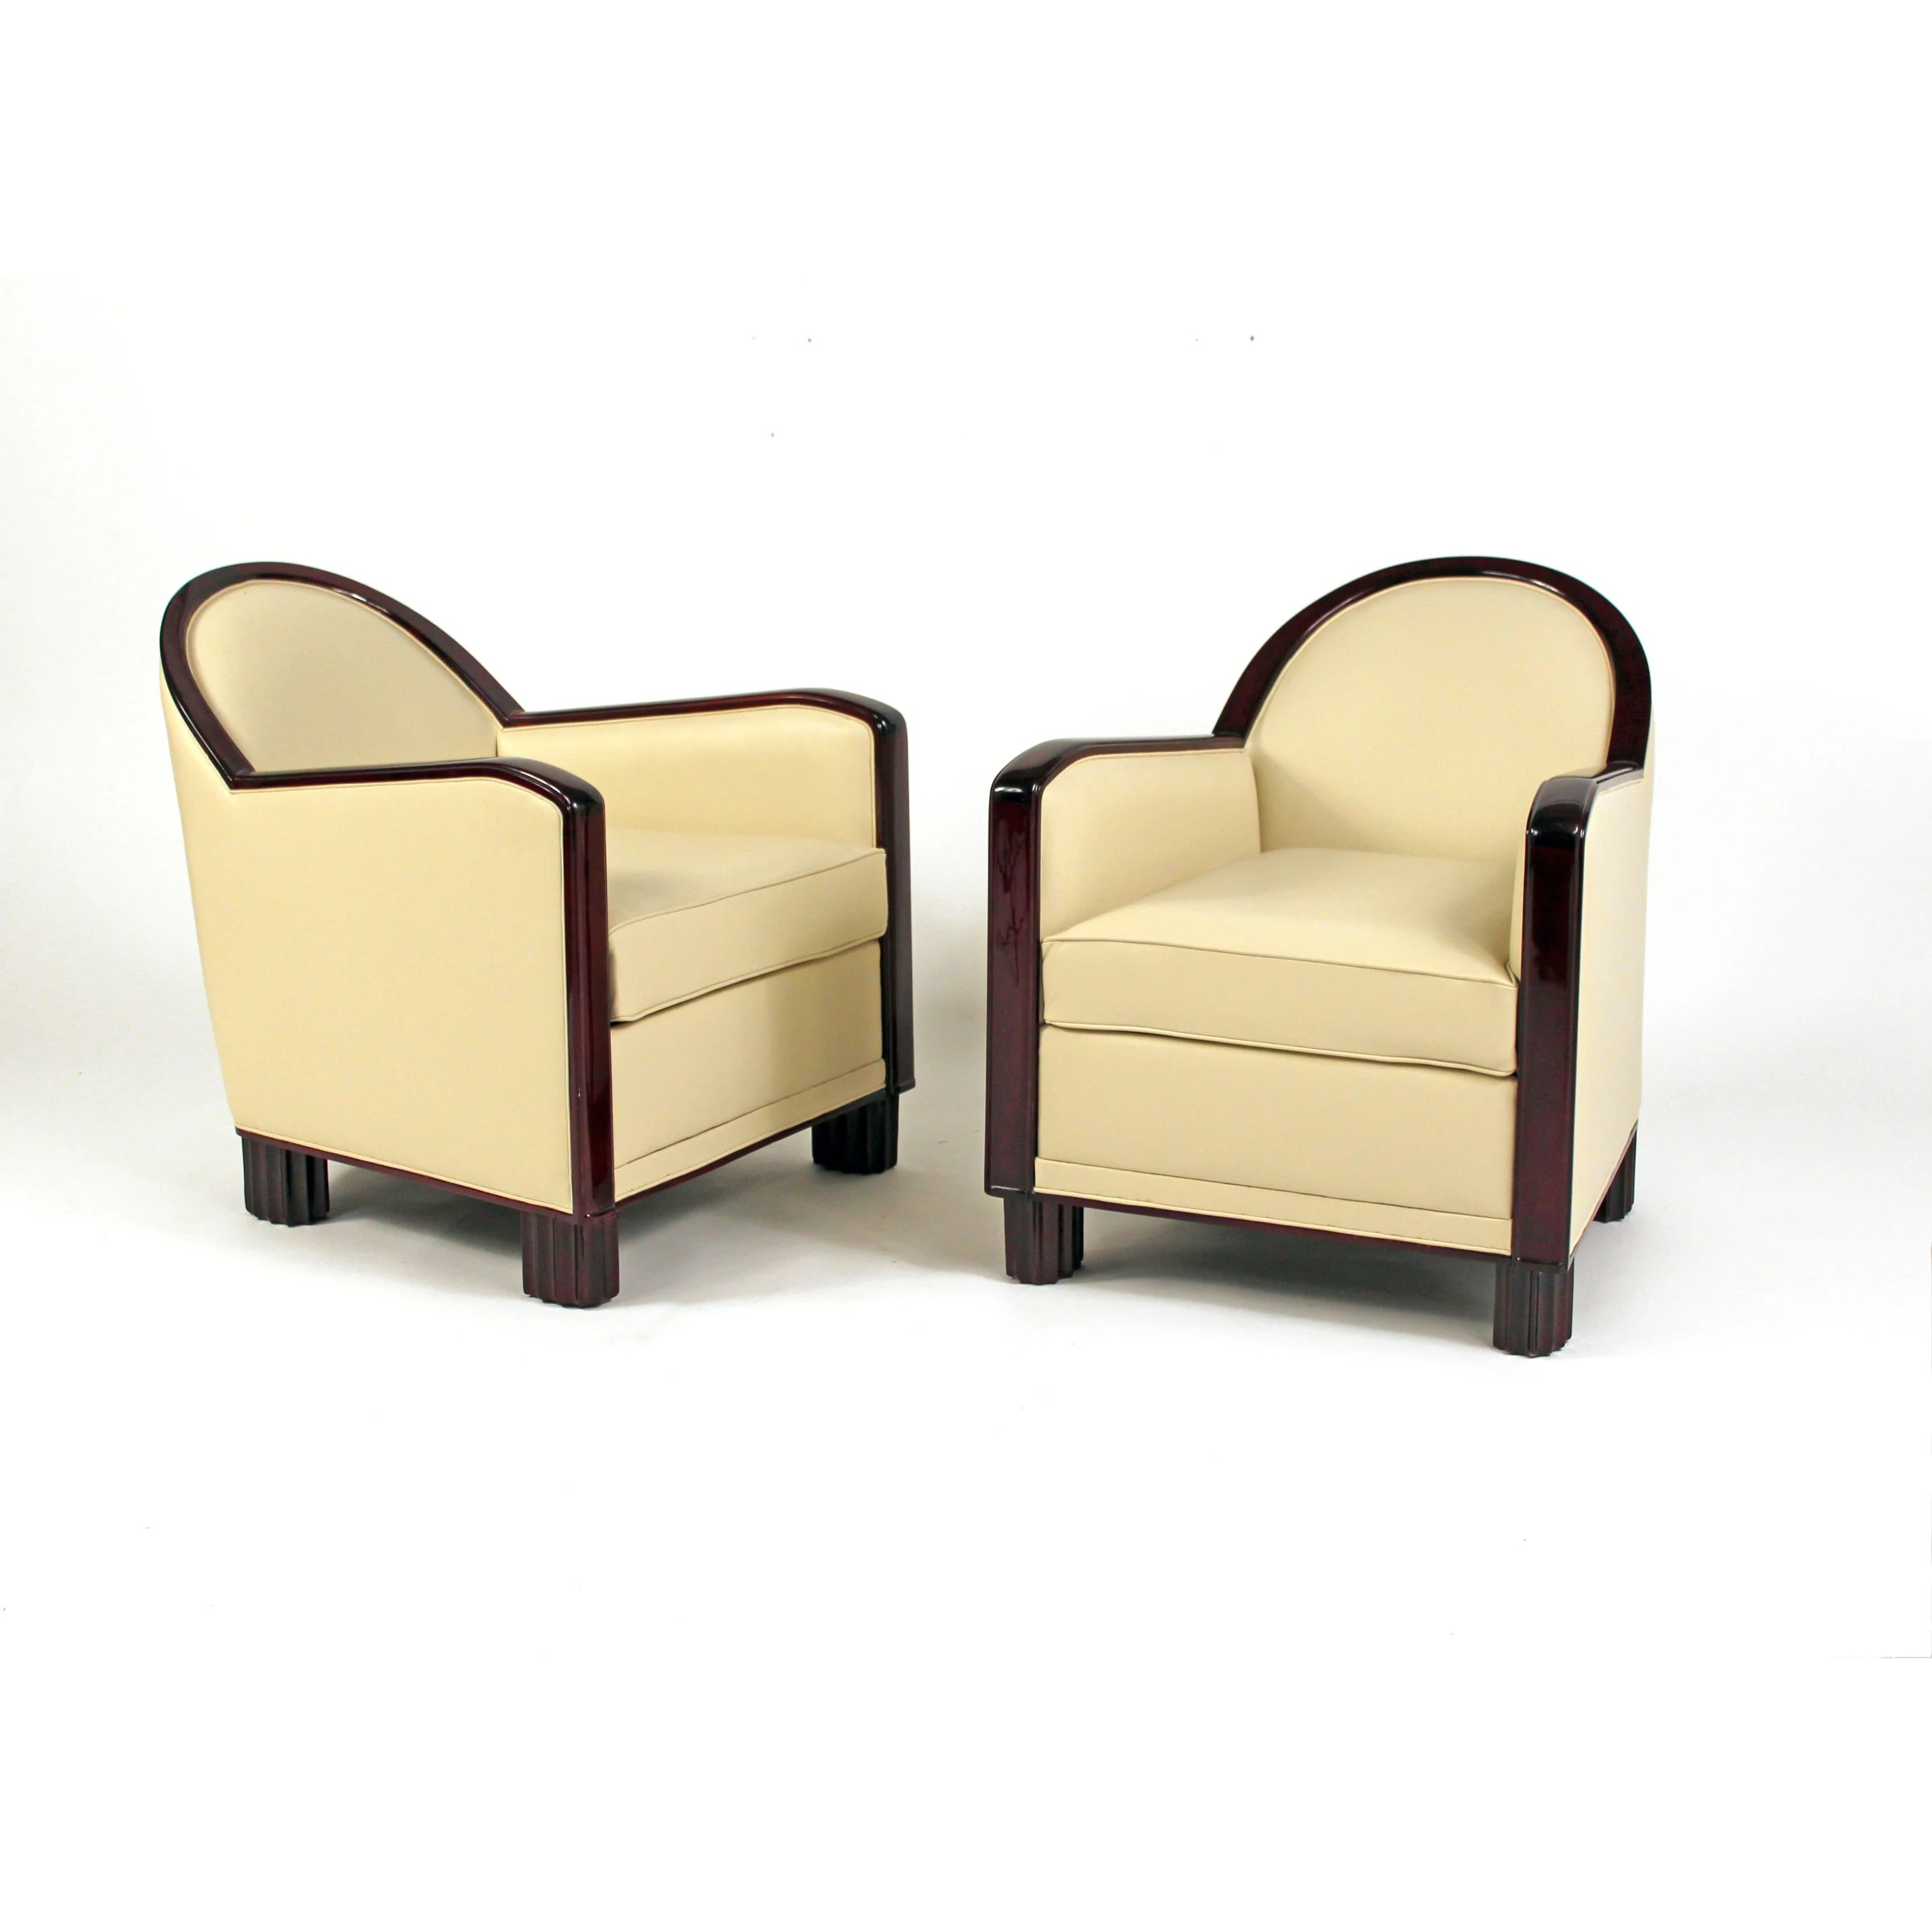 Modernes Bild Decoration Interieure Modernes (dim), Pair Of Art Deco Club Chairs, 1930 | Martell Gallery